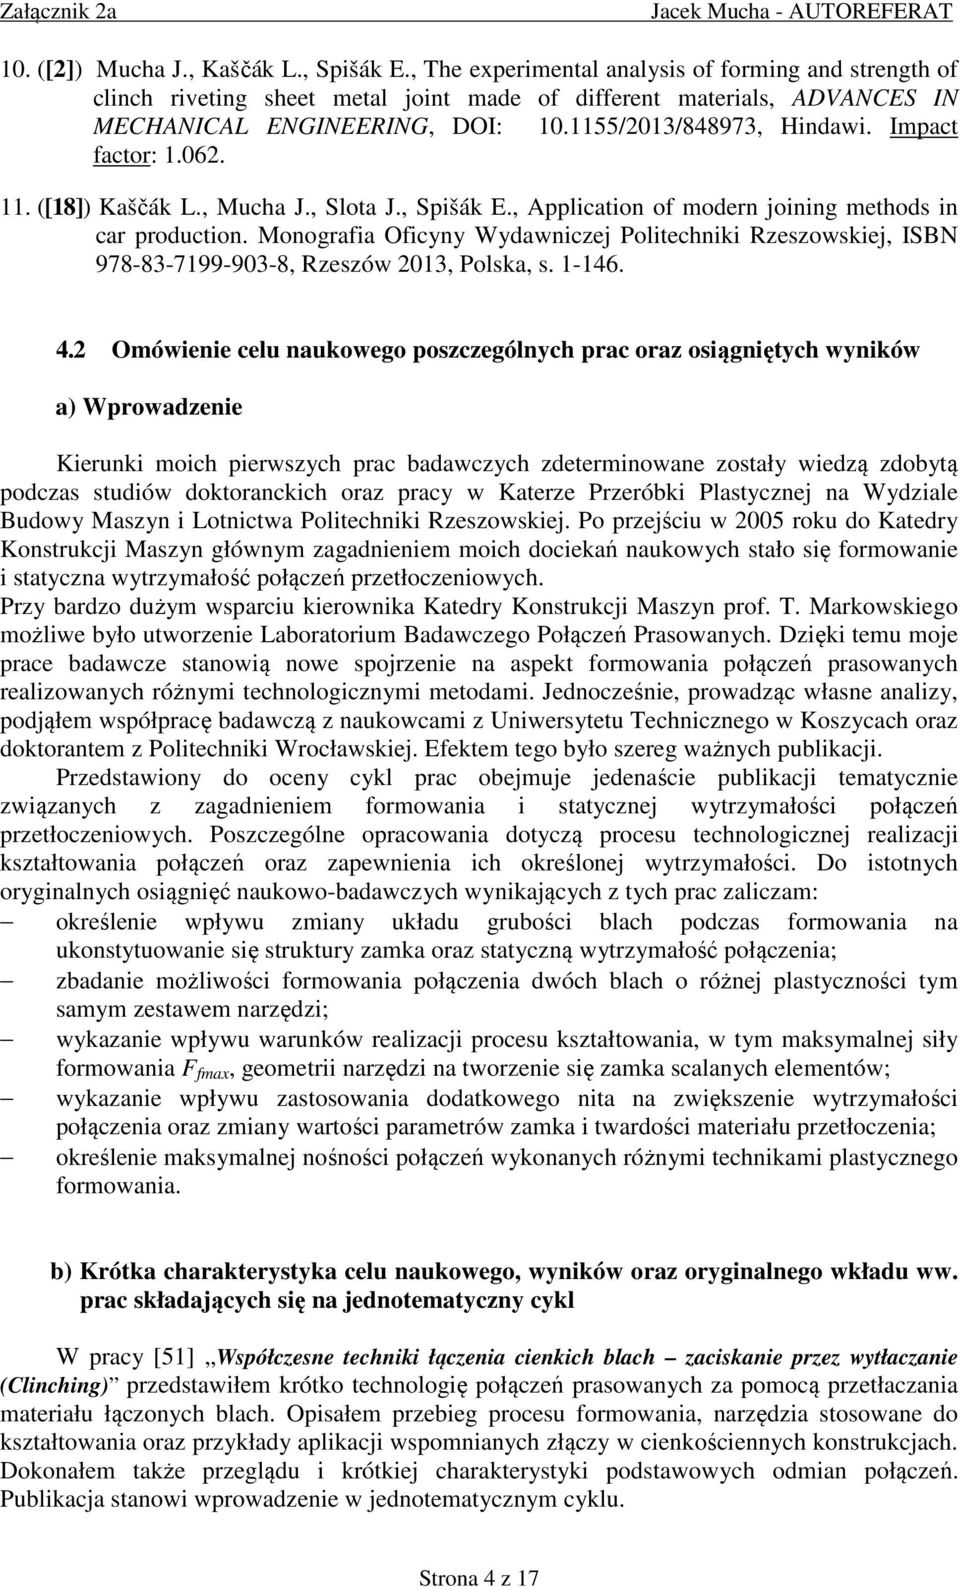 Impact factor: 1.062. 11. ([18]) Kaščák L., Mucha J., Slota J., Spišák E., Application of modern joining methods in car production.